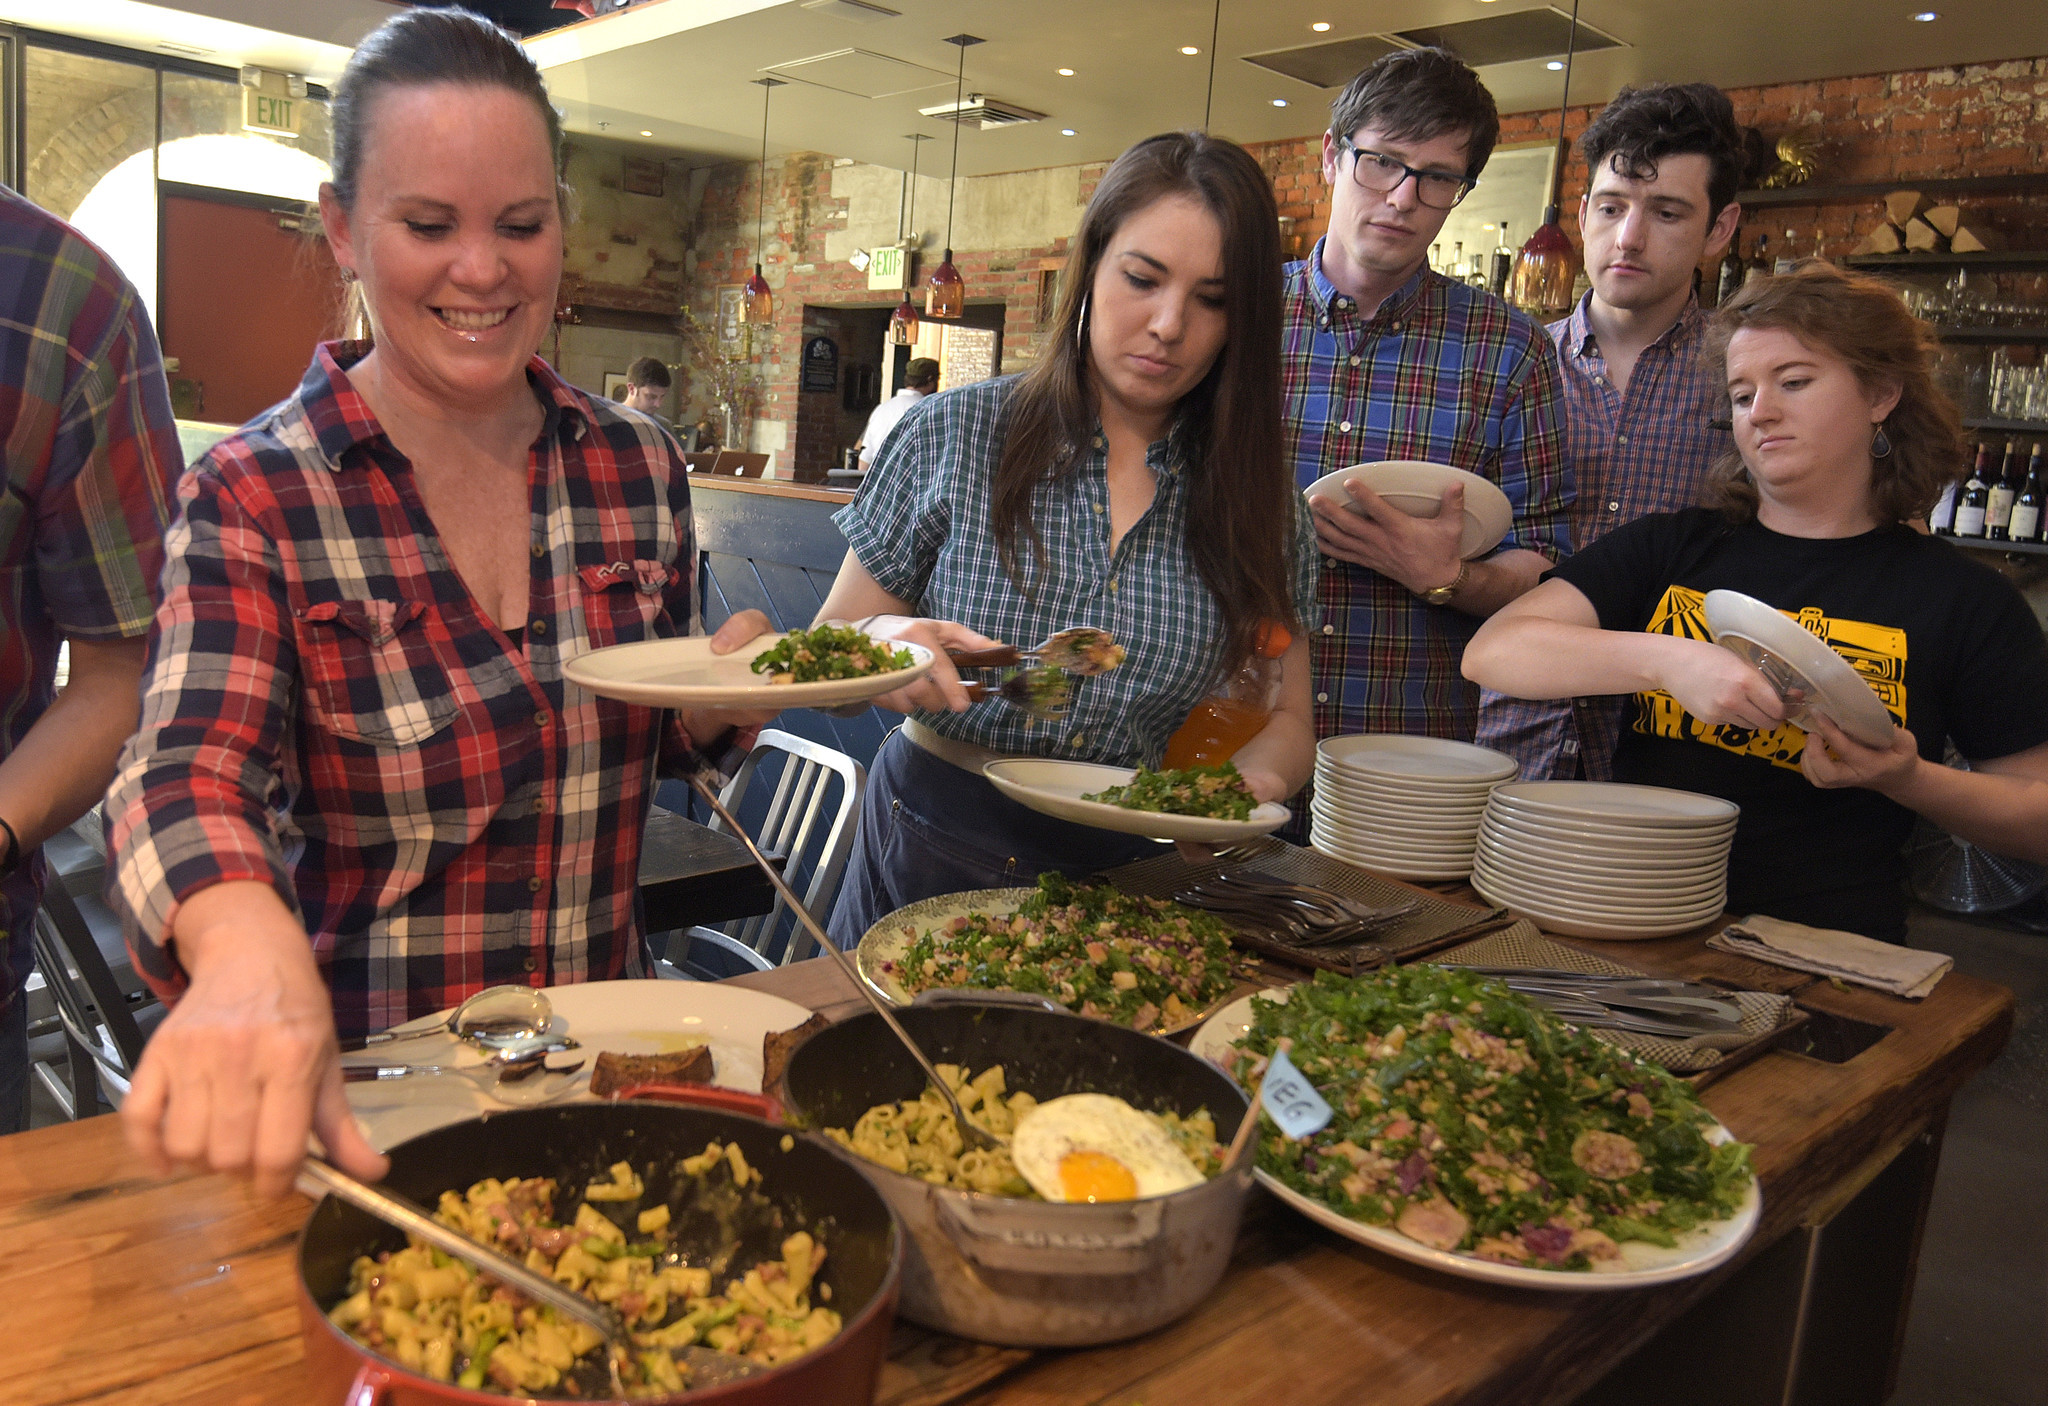 Baltimore Restaurant Staffs Bond Get Creative With Family Meal